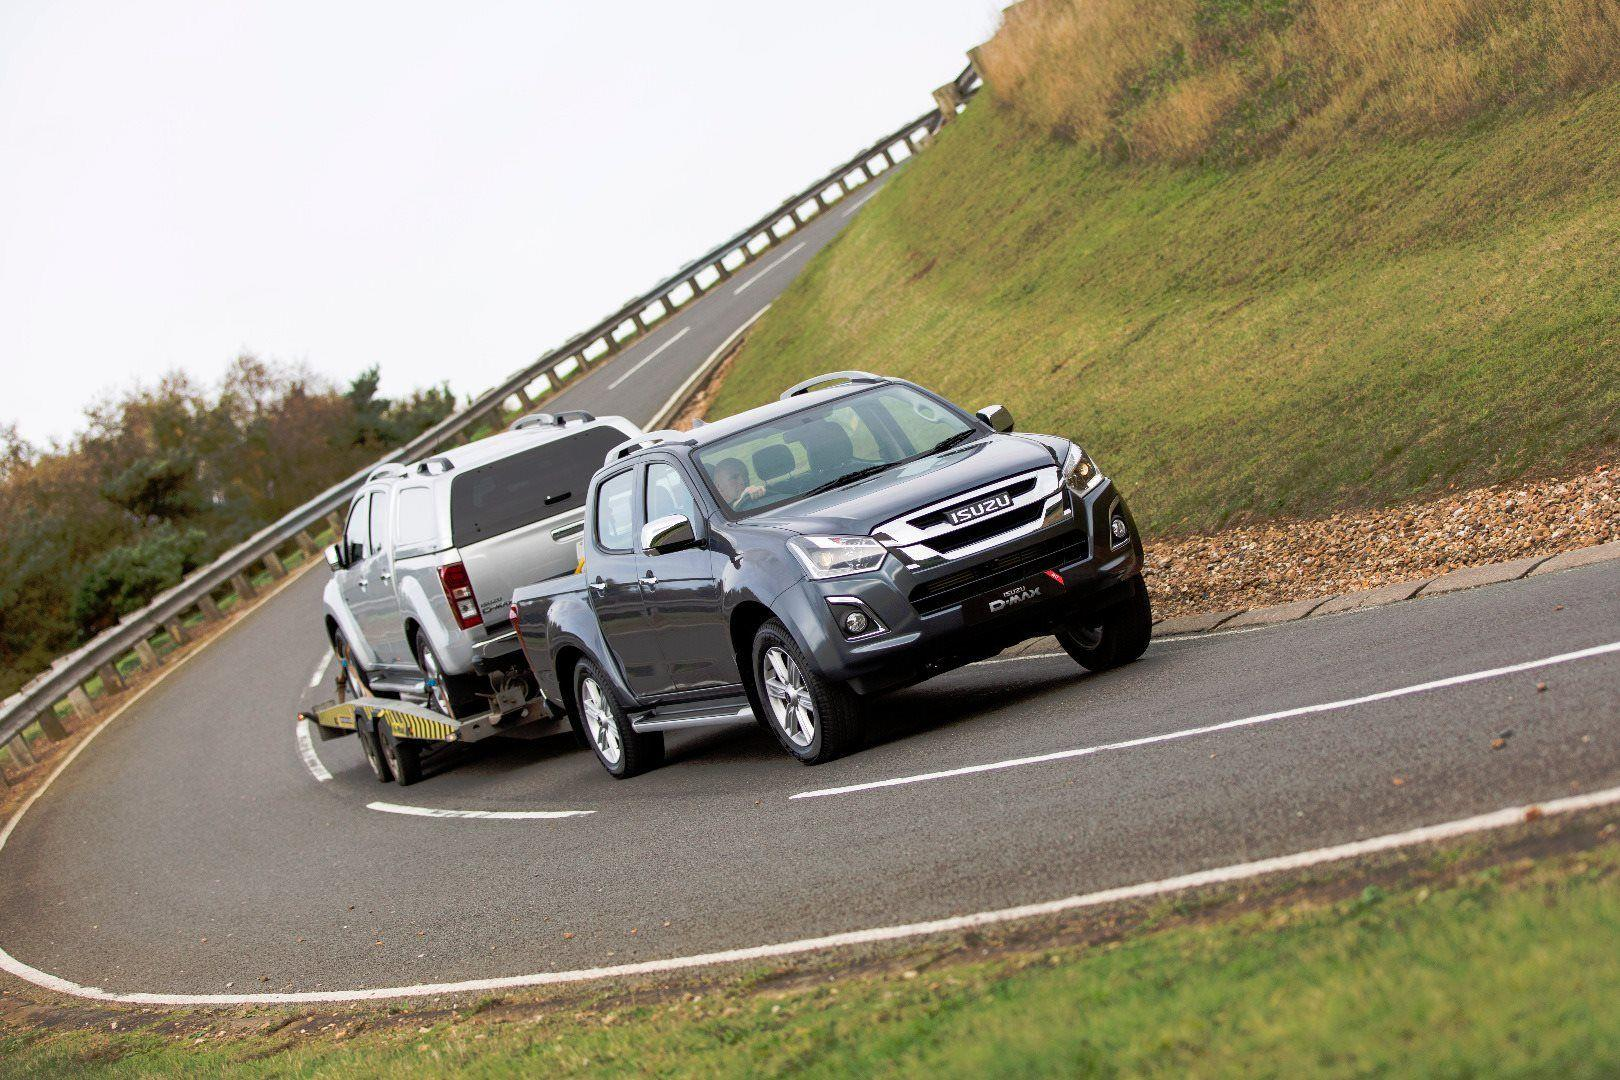 AWARD-WINNING D-MAX BENEFITS WITH ATTRACTIVE OFFERS ACROSS THE RANGE